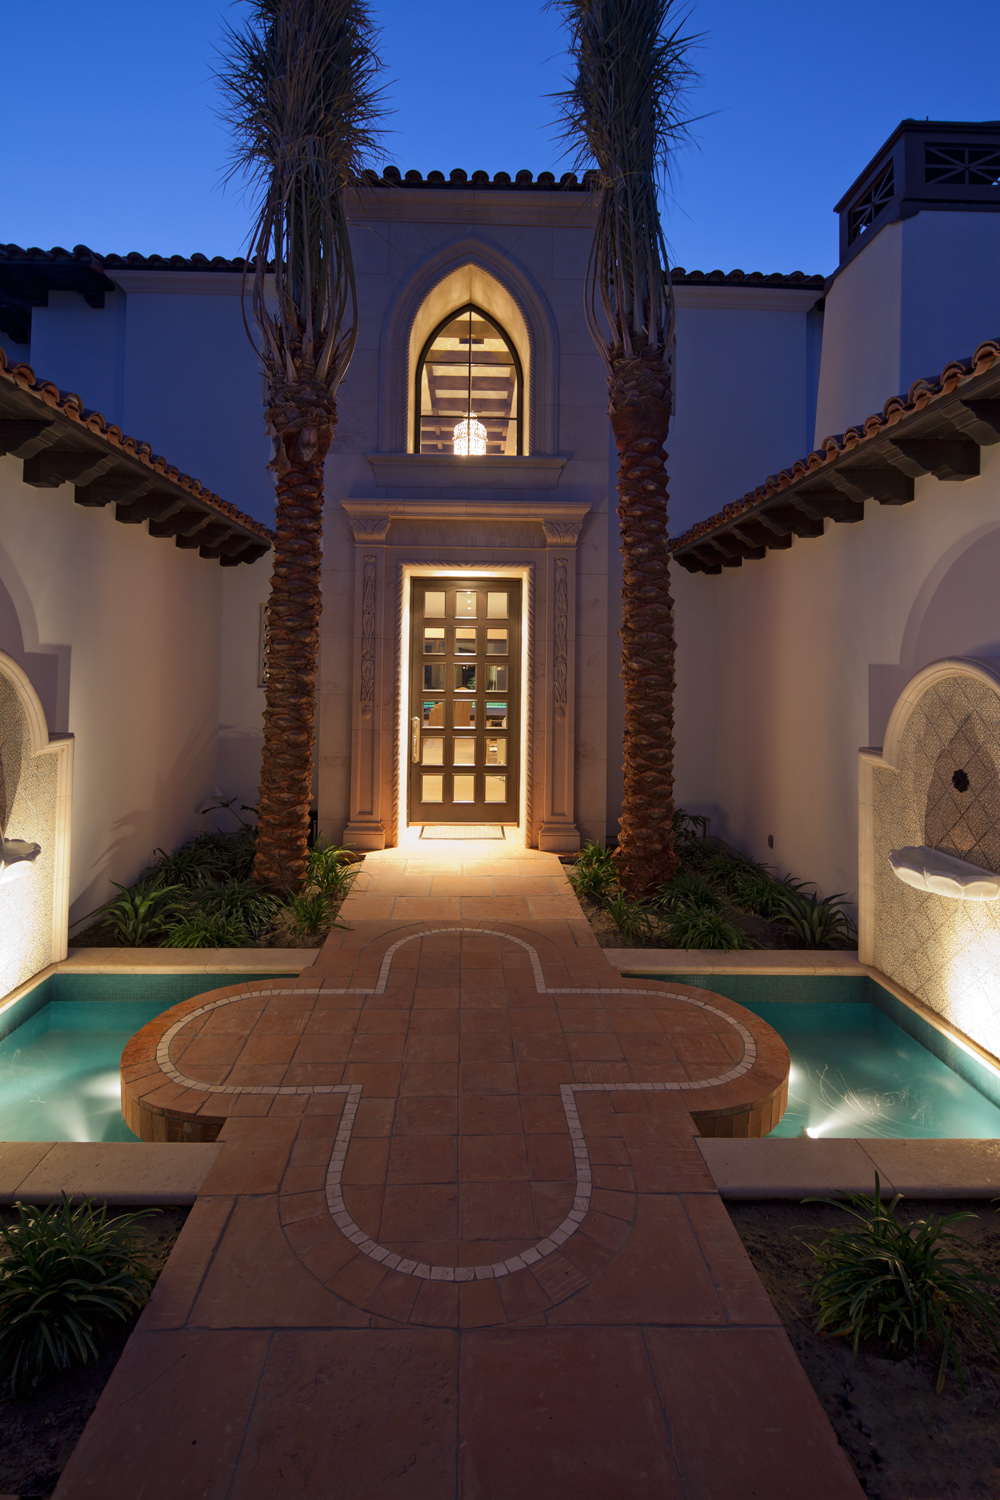 Contemporary-Spanish-Evening-Entryway-Fountains-Premier-General-Contractors.jpg